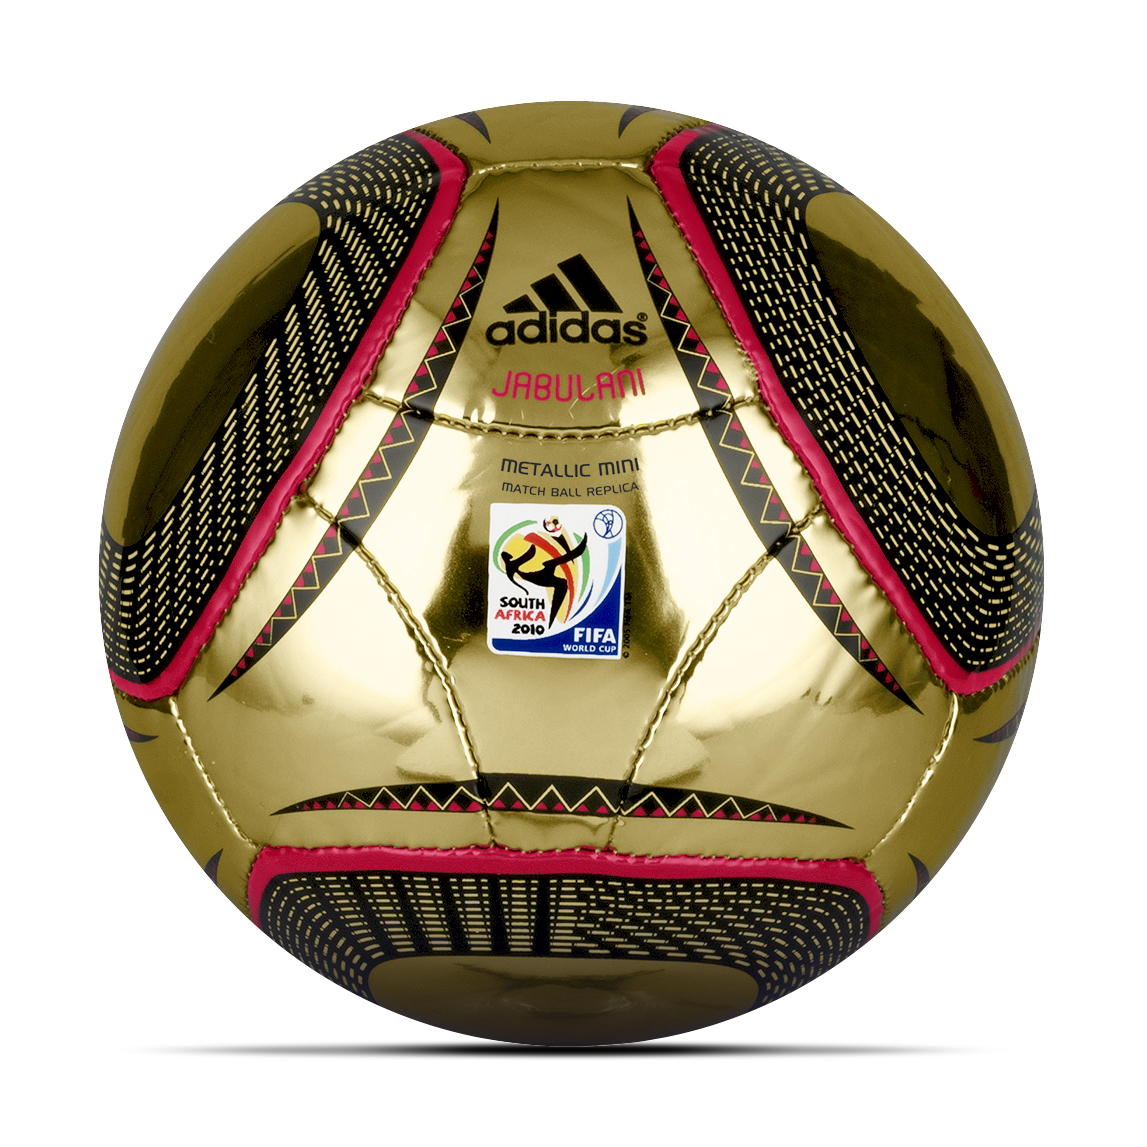 adidas World Cup 2010 Metallic Miniball - Size 1